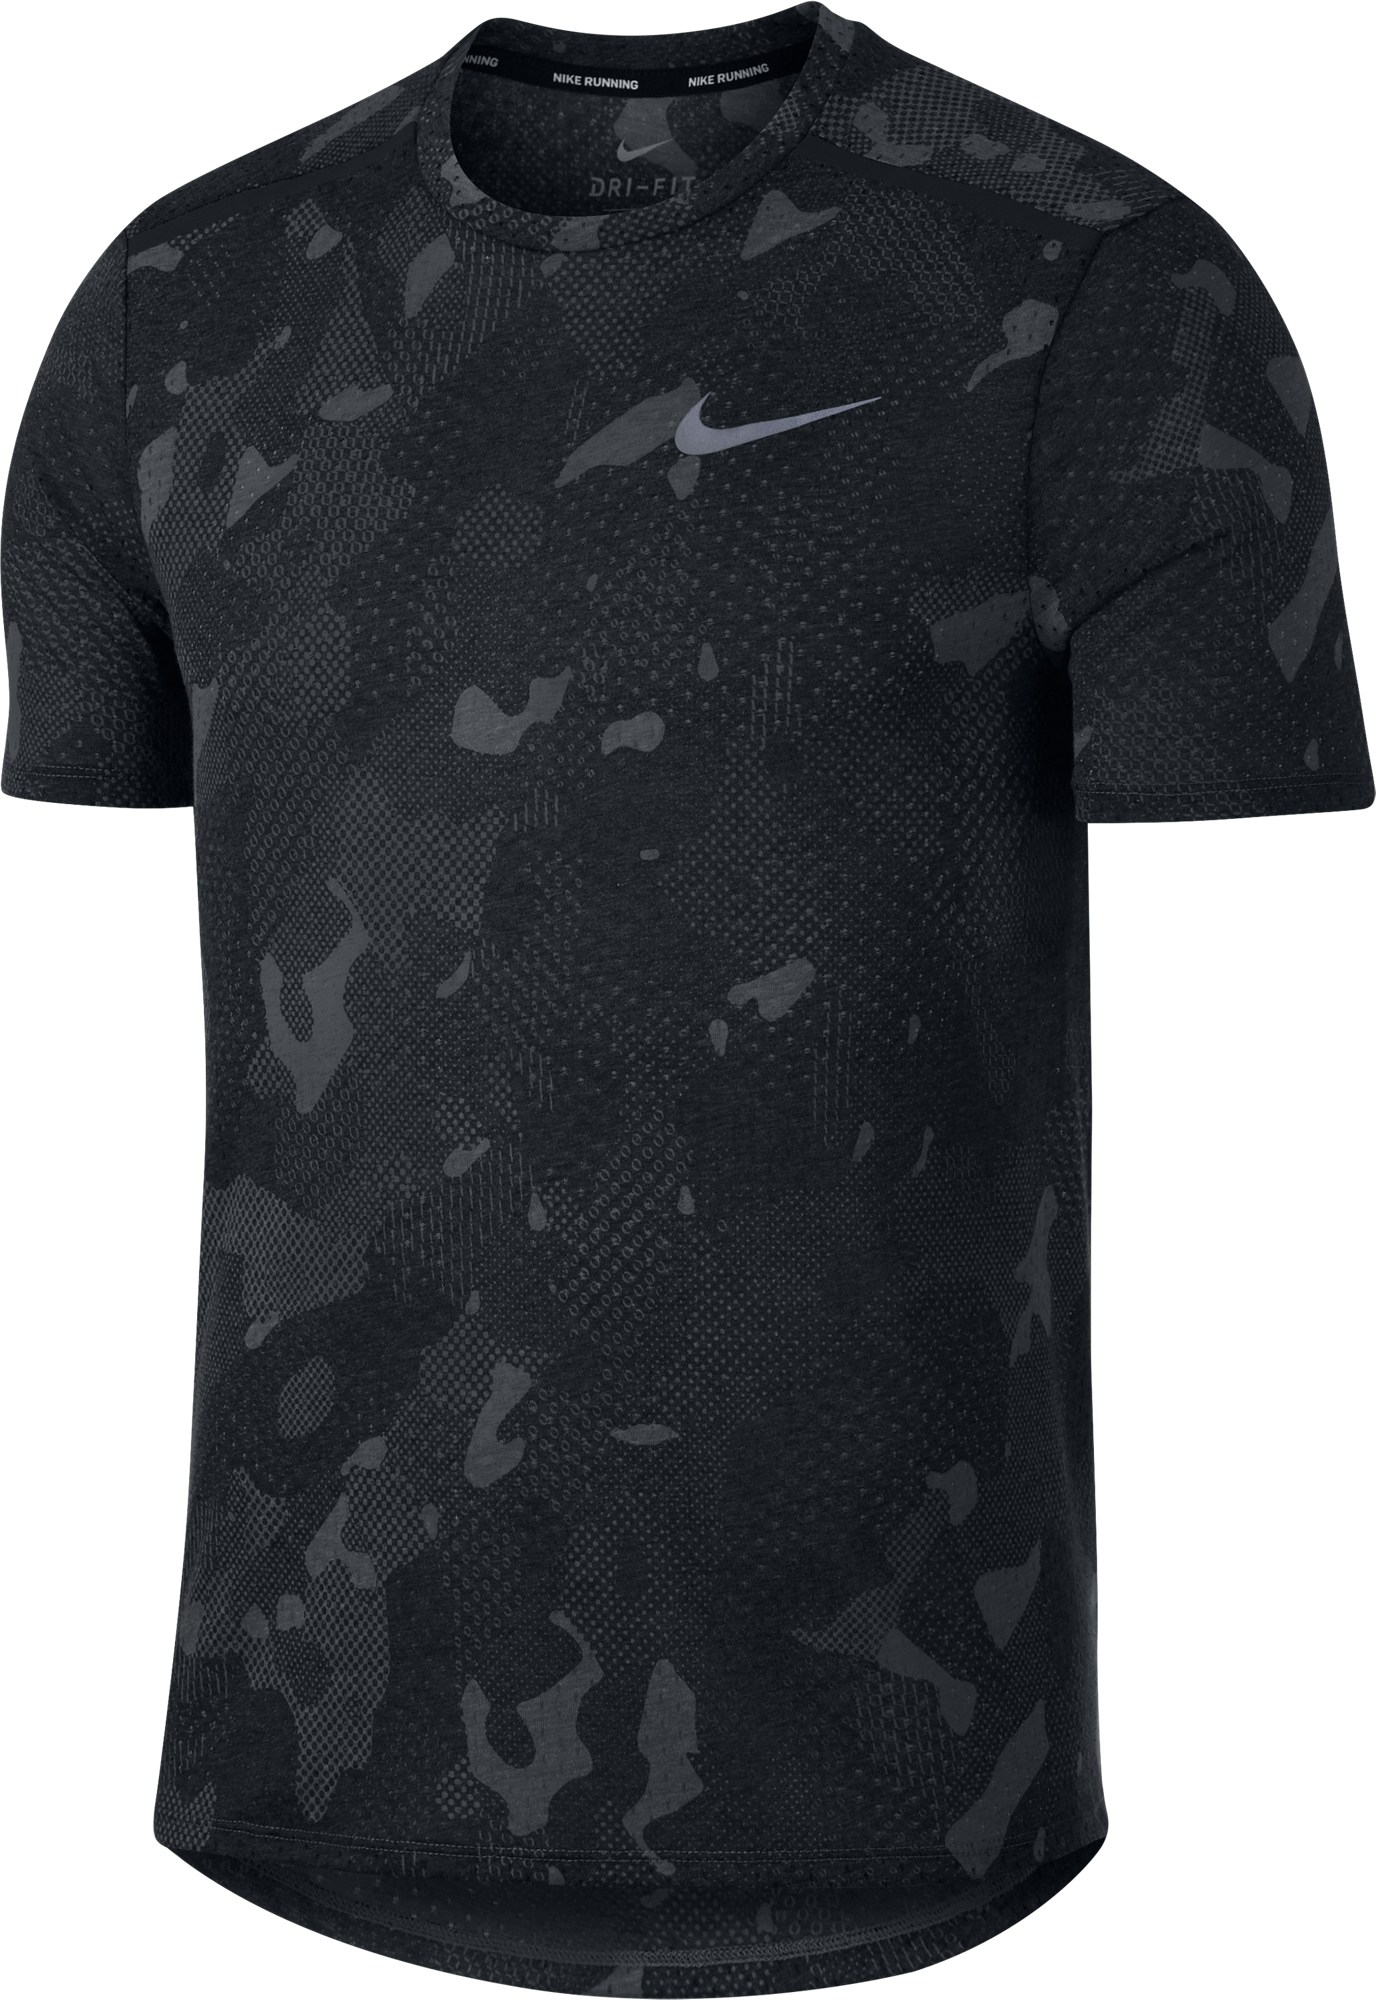 Nike Tailwind Running Top - Men's